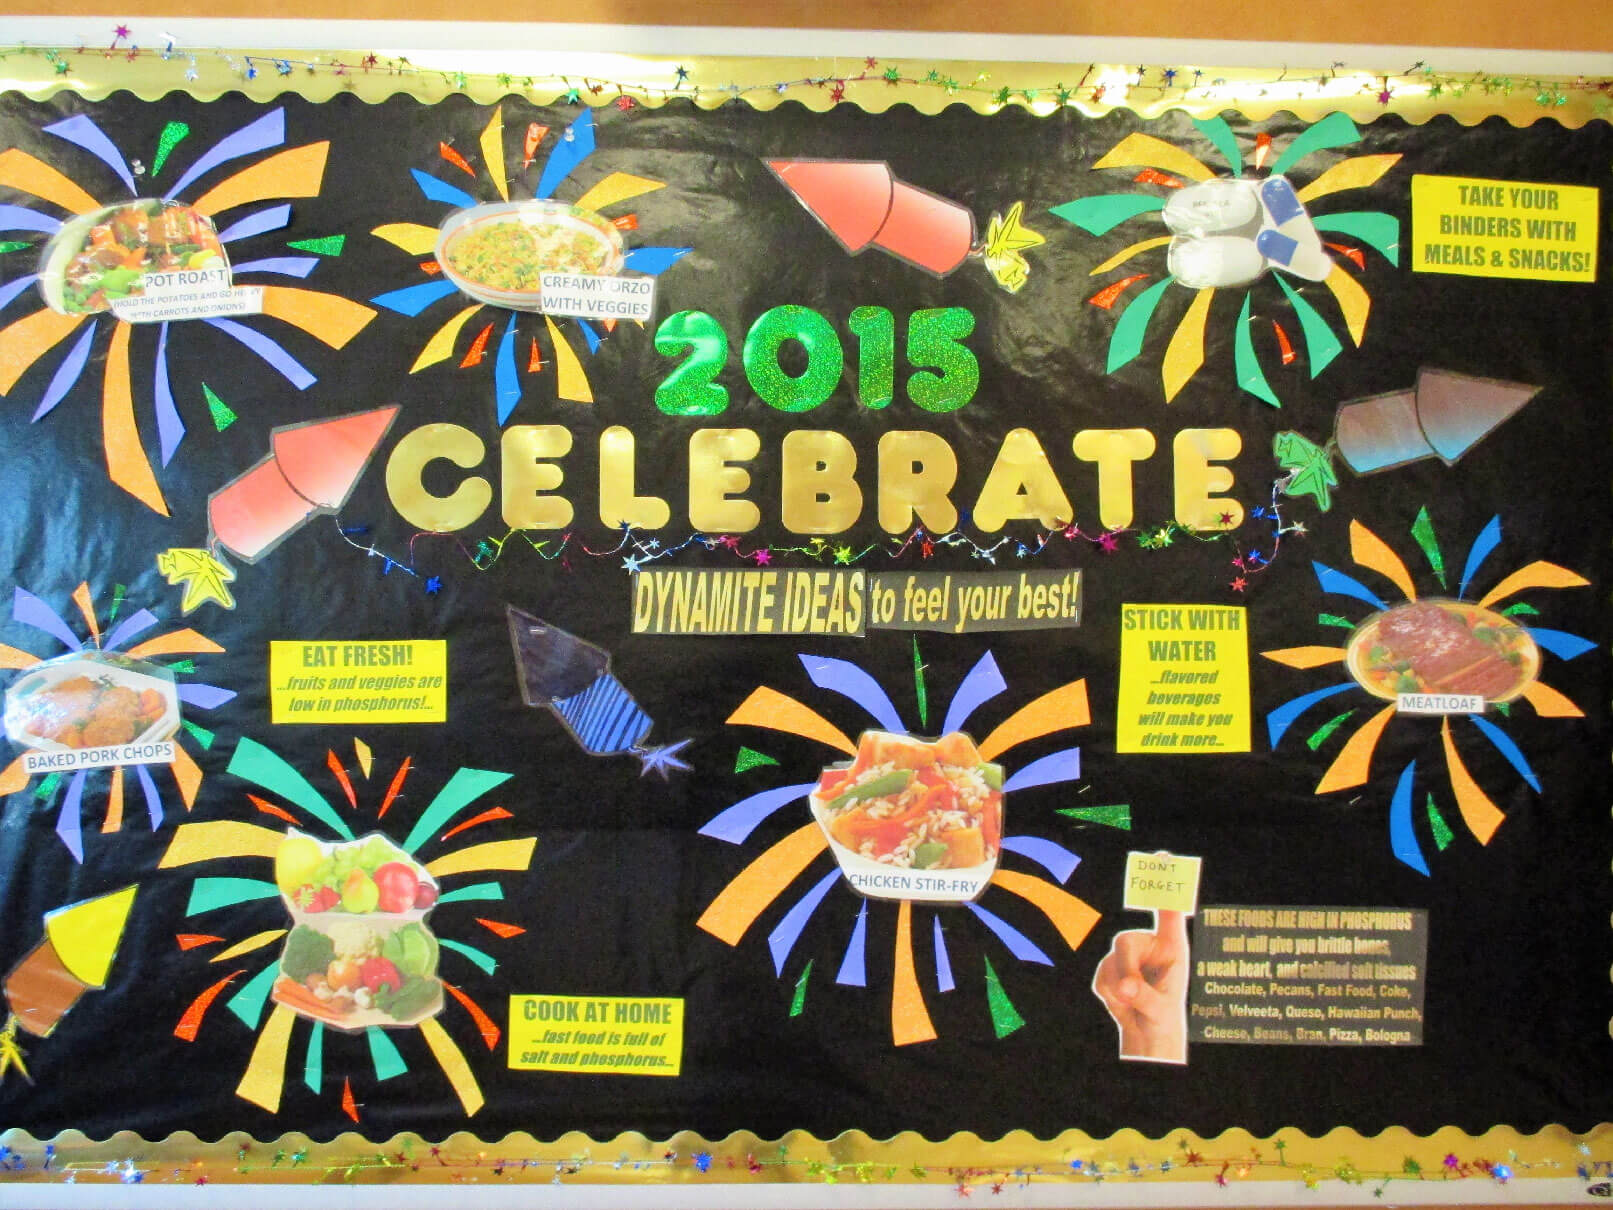 January Dialysis Bulletin Board Celebrate A New Year Kidney Rd